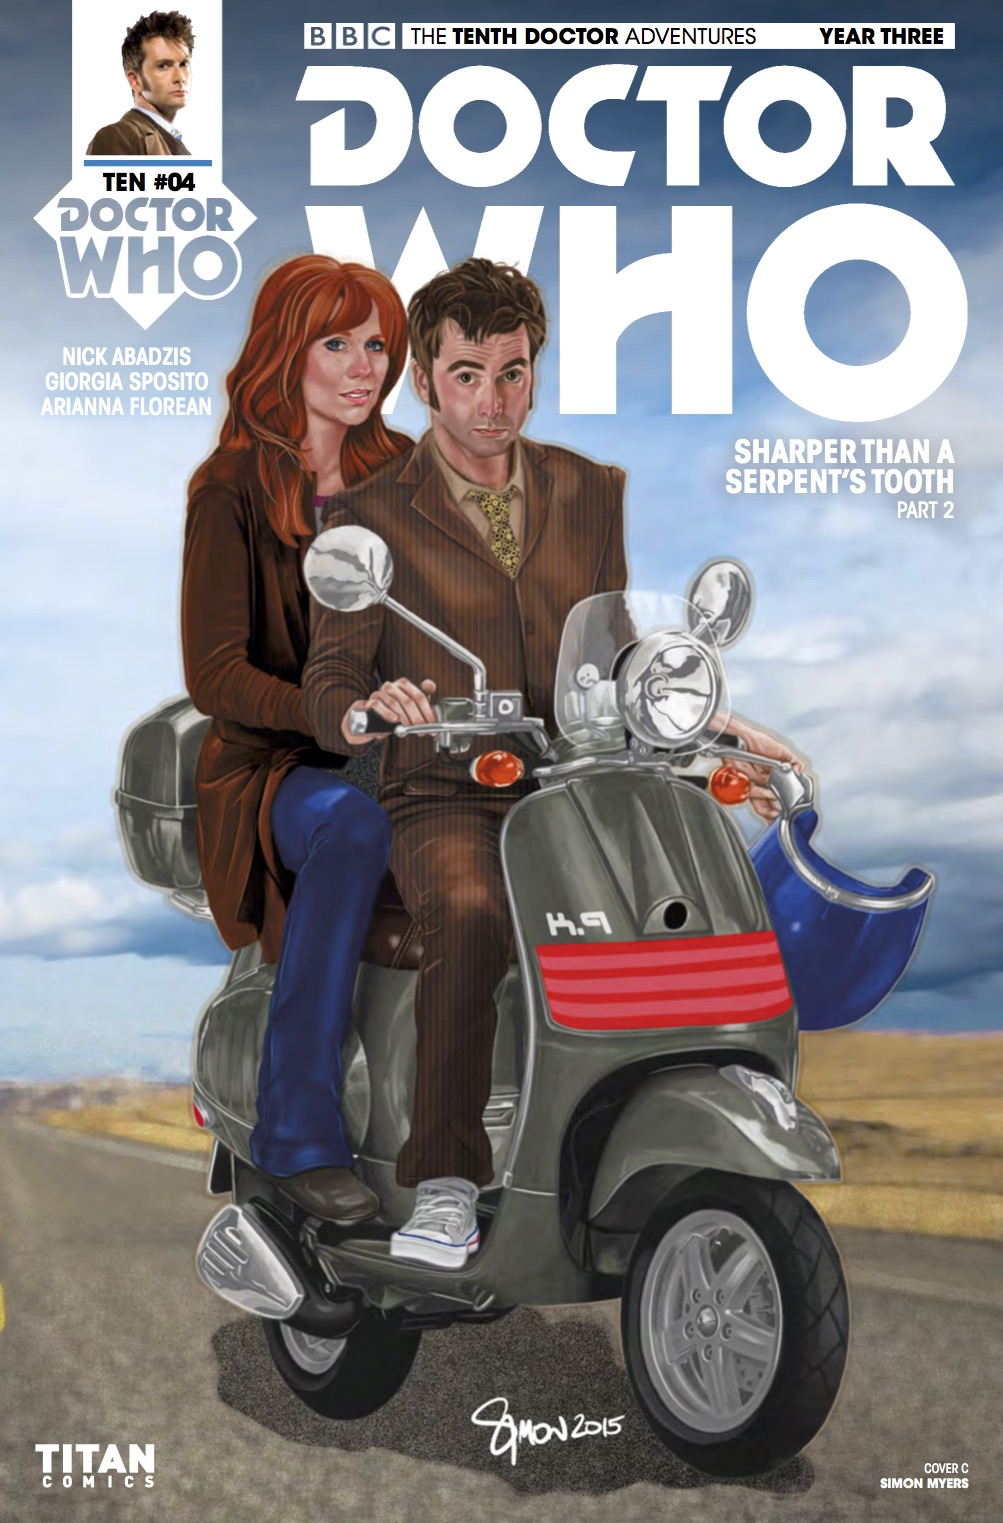 THE TENTH DOCTOR YEAR THREE #4 Cover C (Credit: Titan)